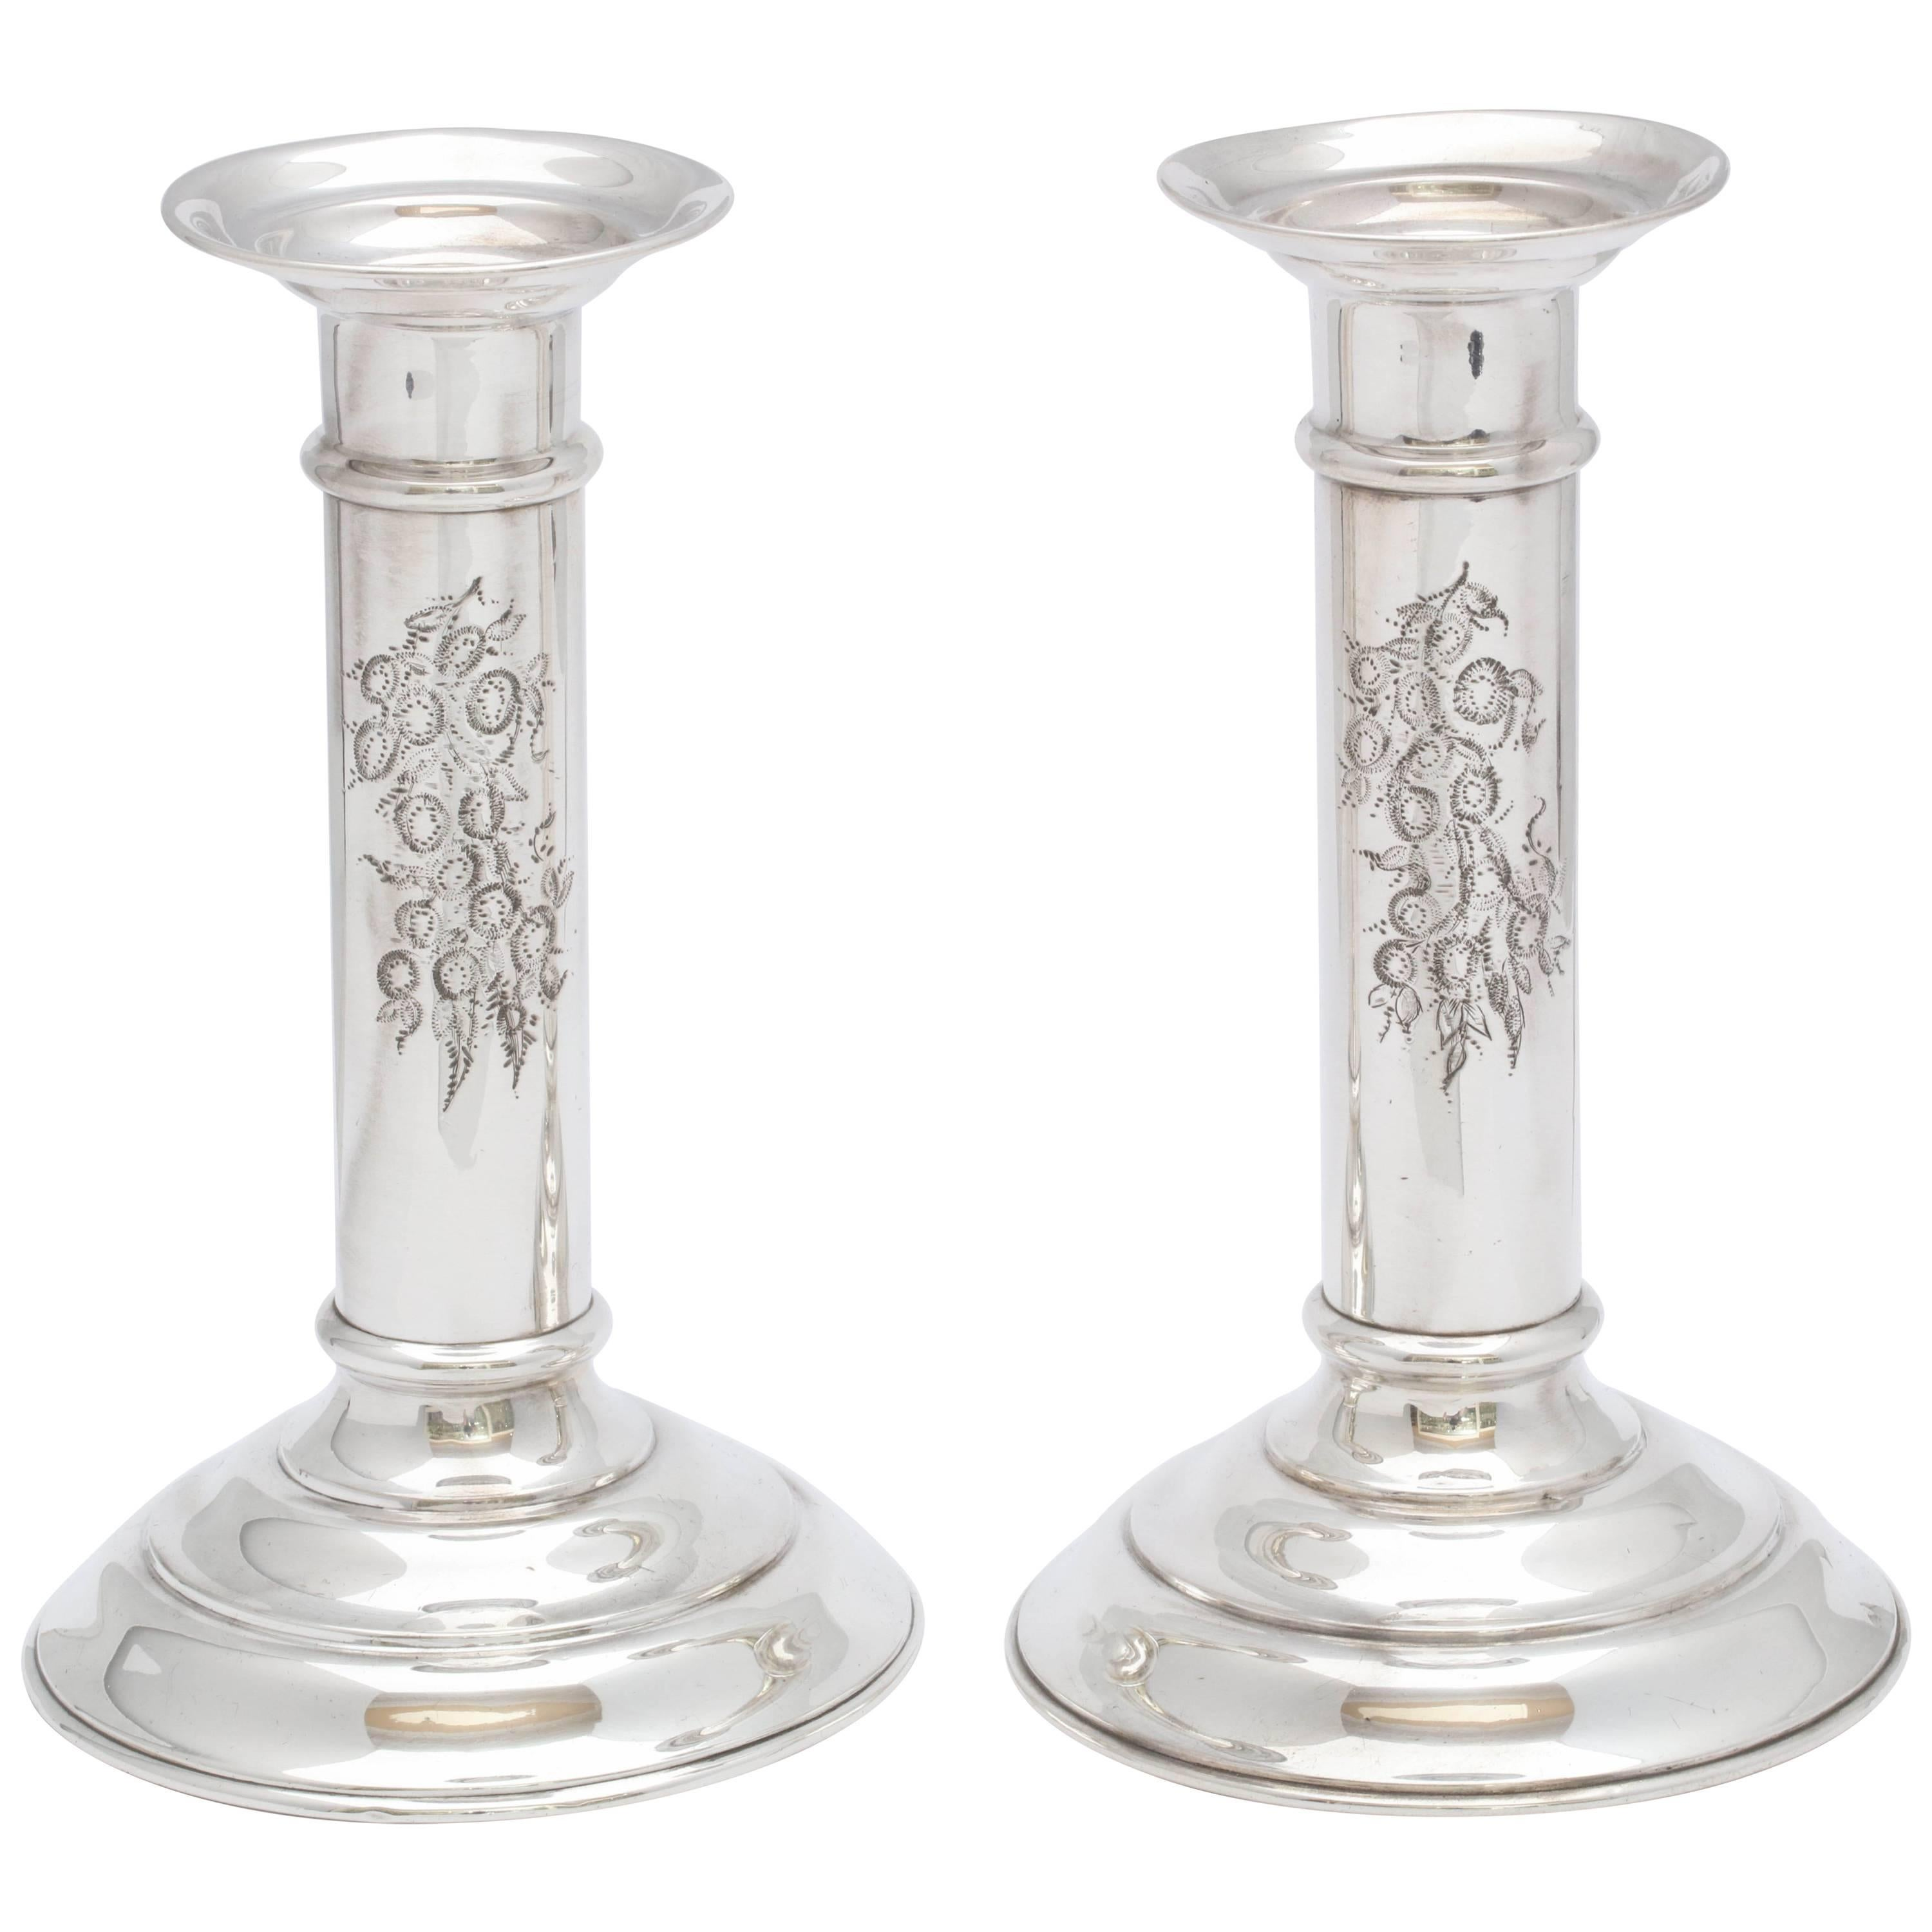 Pair of Edwardian Sterling Silver Column-Form Candlesticks